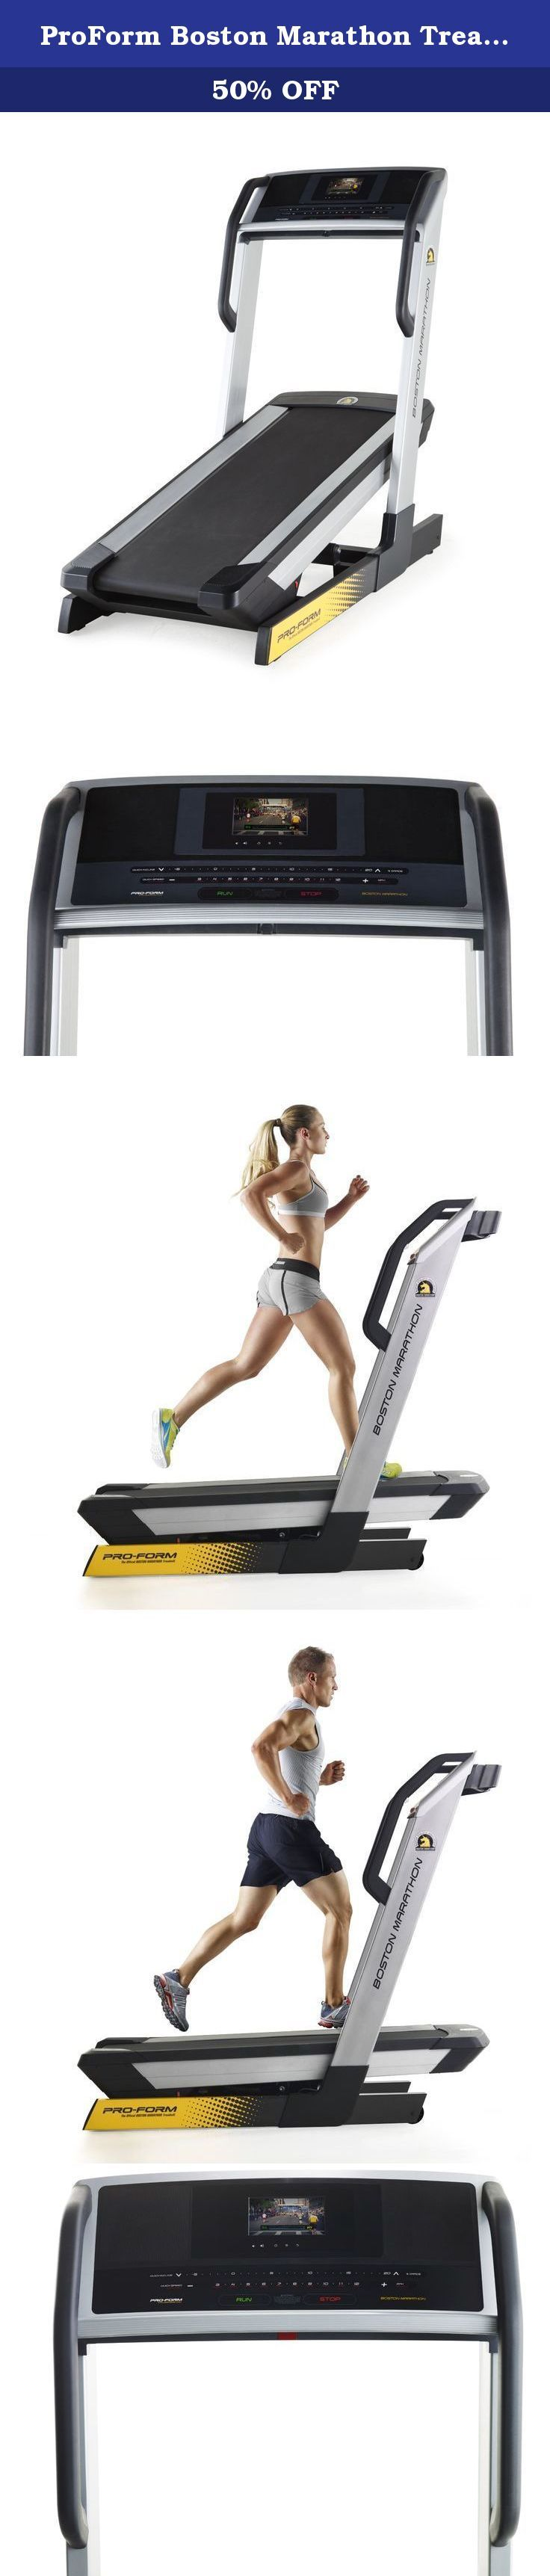 ProForm Boston Marathon Treadmill. ProForm, the No. 1 brand of treadmills and fitness equipment worldwide, partners with the elite Boston Athletic Association to create the official training treadmill of the Boston Marathon. Designed with intelligence, the Boston Marthon Treadmill is powered with innovative tools propelling you to victory and better results. Condition for the historic marathon using our HD video workouts of the actual Boston race course. Our industry-leading iFit…